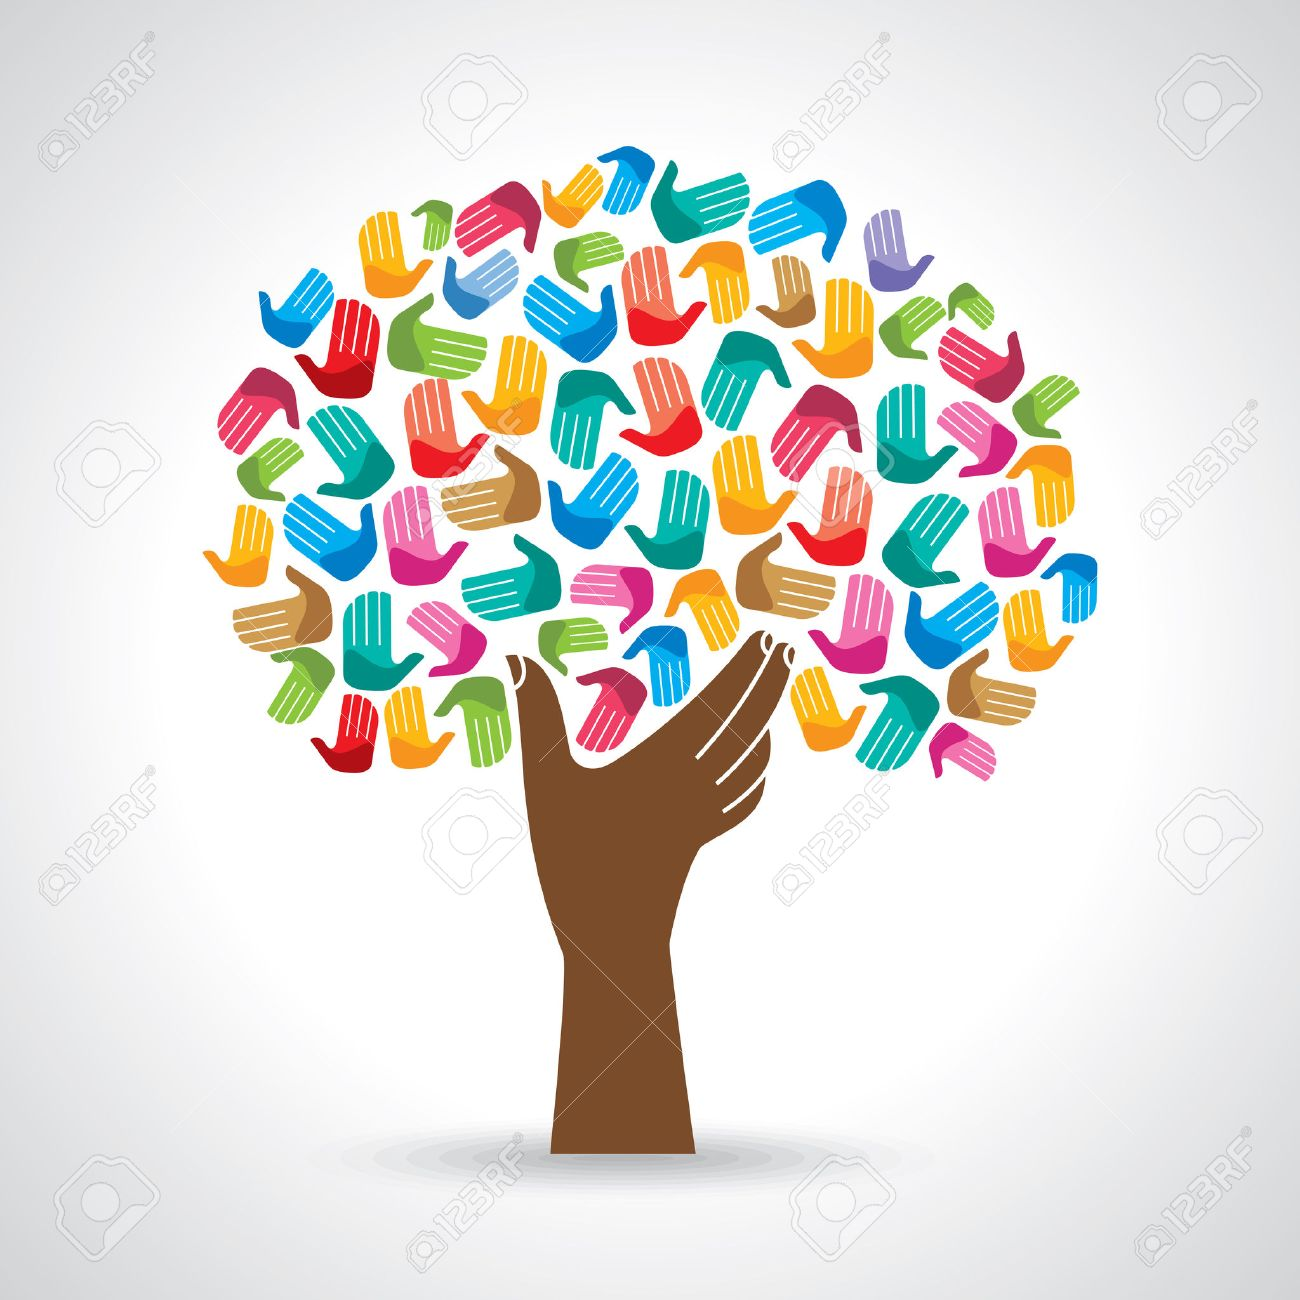 Isolated diversity tree hands illustration. Standard-Bild - 37110191